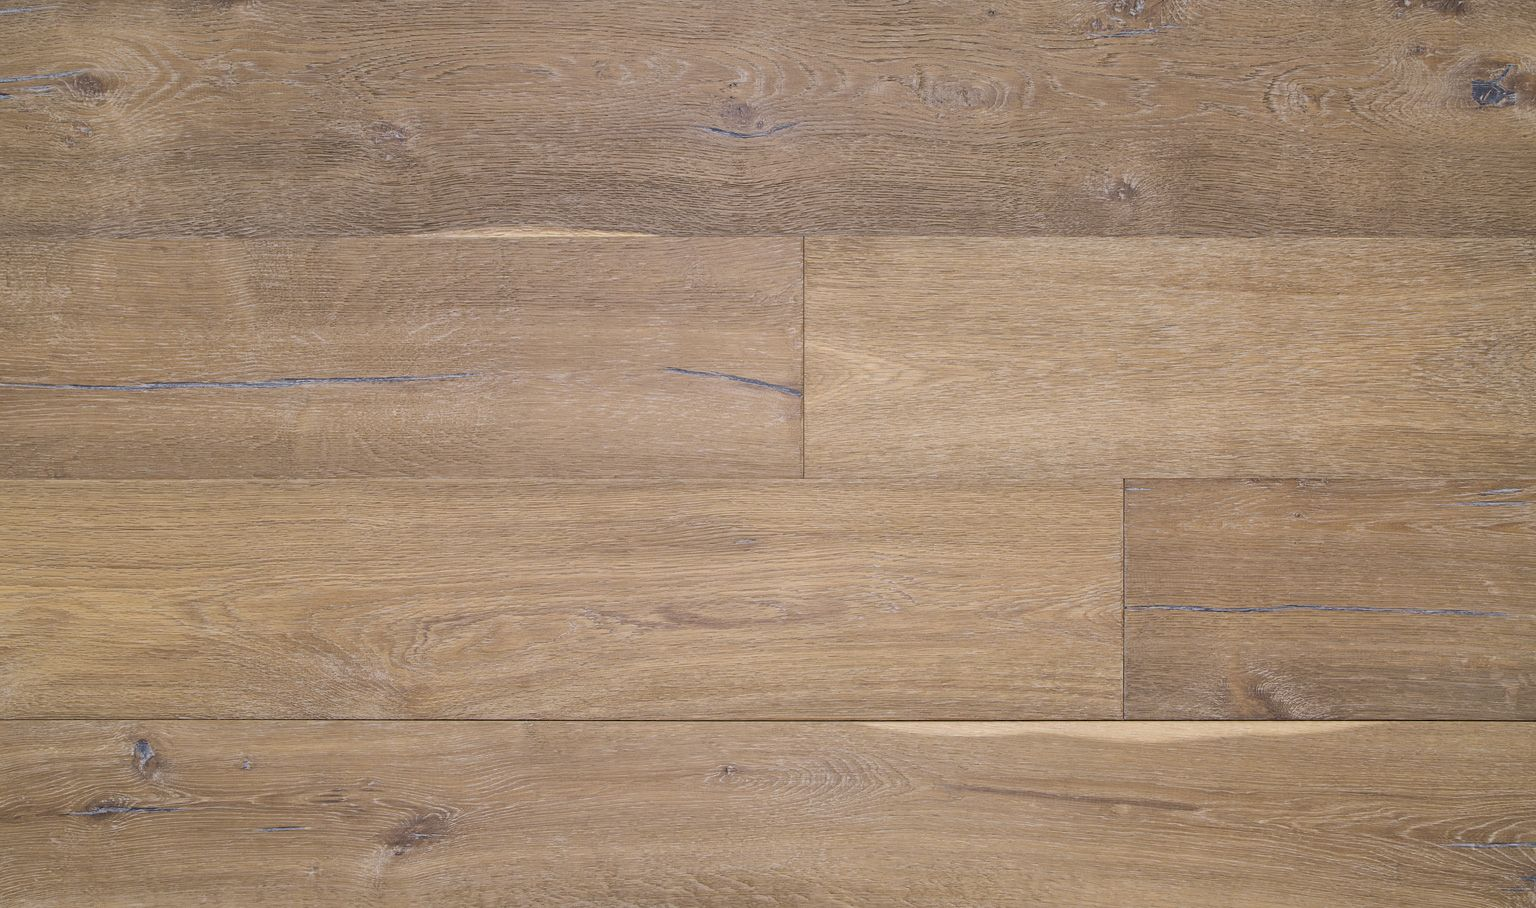 Vivaldi Oak Engineered Light Brown Hardwood Floors Elegant Wood Flooring Matte Finish